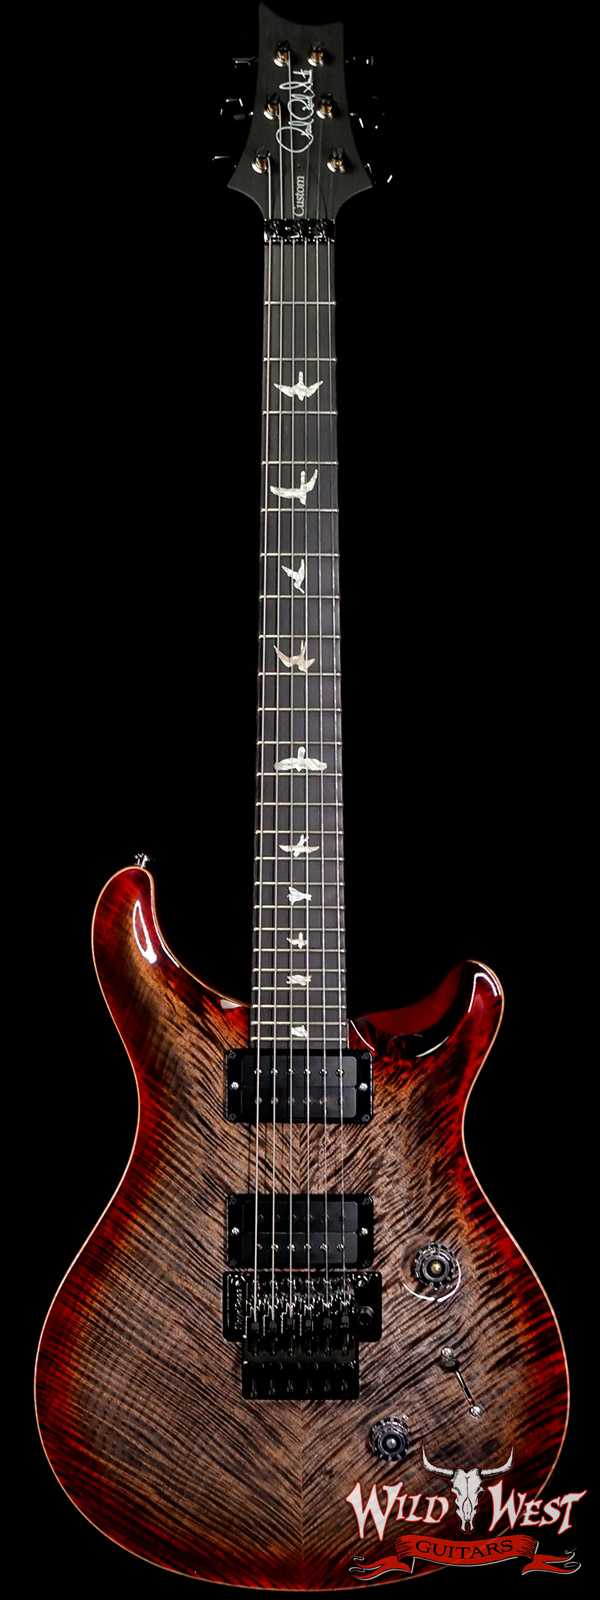 PRS Wood Library 10 Top Custom 24 Floyd Rose Roasted Flame Maple Neck Charcoal Cherry Burst